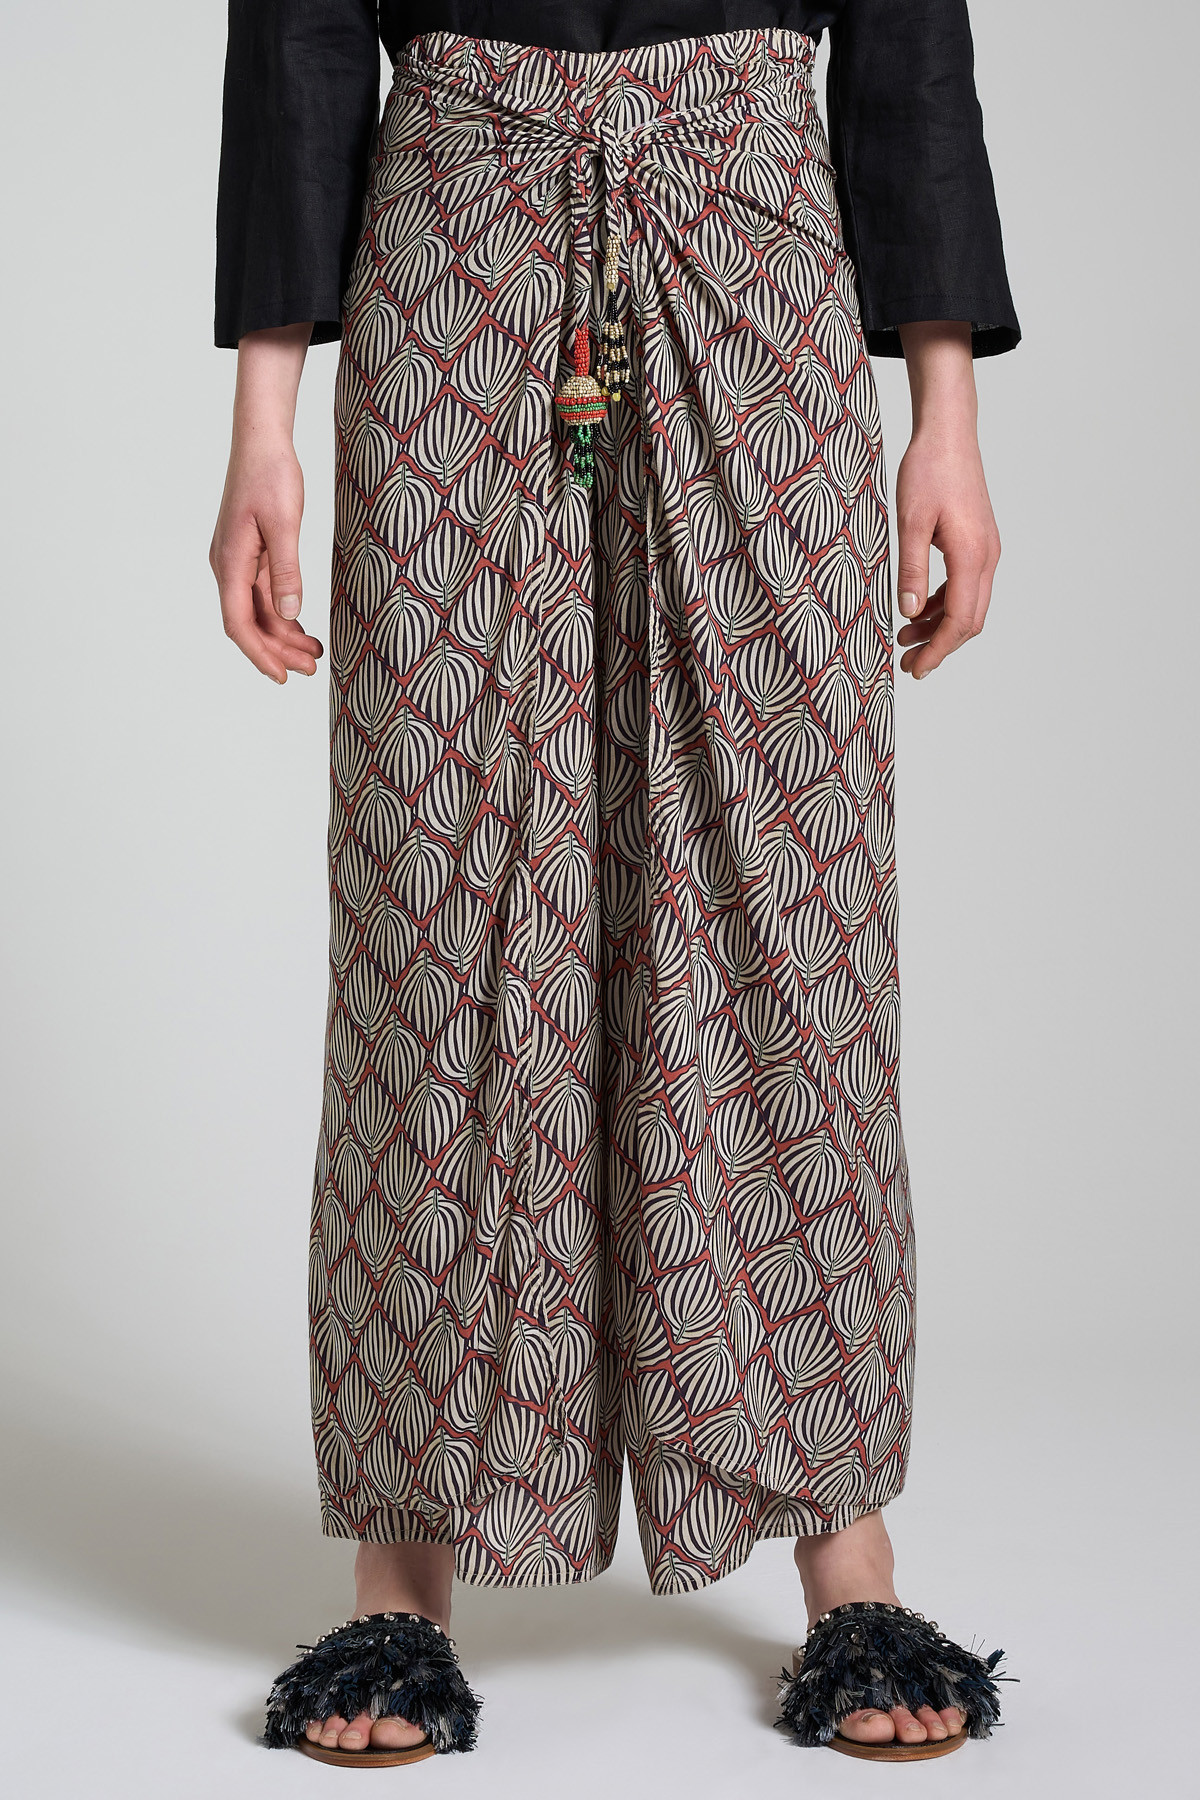 Women's Clothing Geometric Palms Pants with Wide Leg in Cream and Brown Fantasy Maliparmi | Skirts and Pants | JH744950551B1226